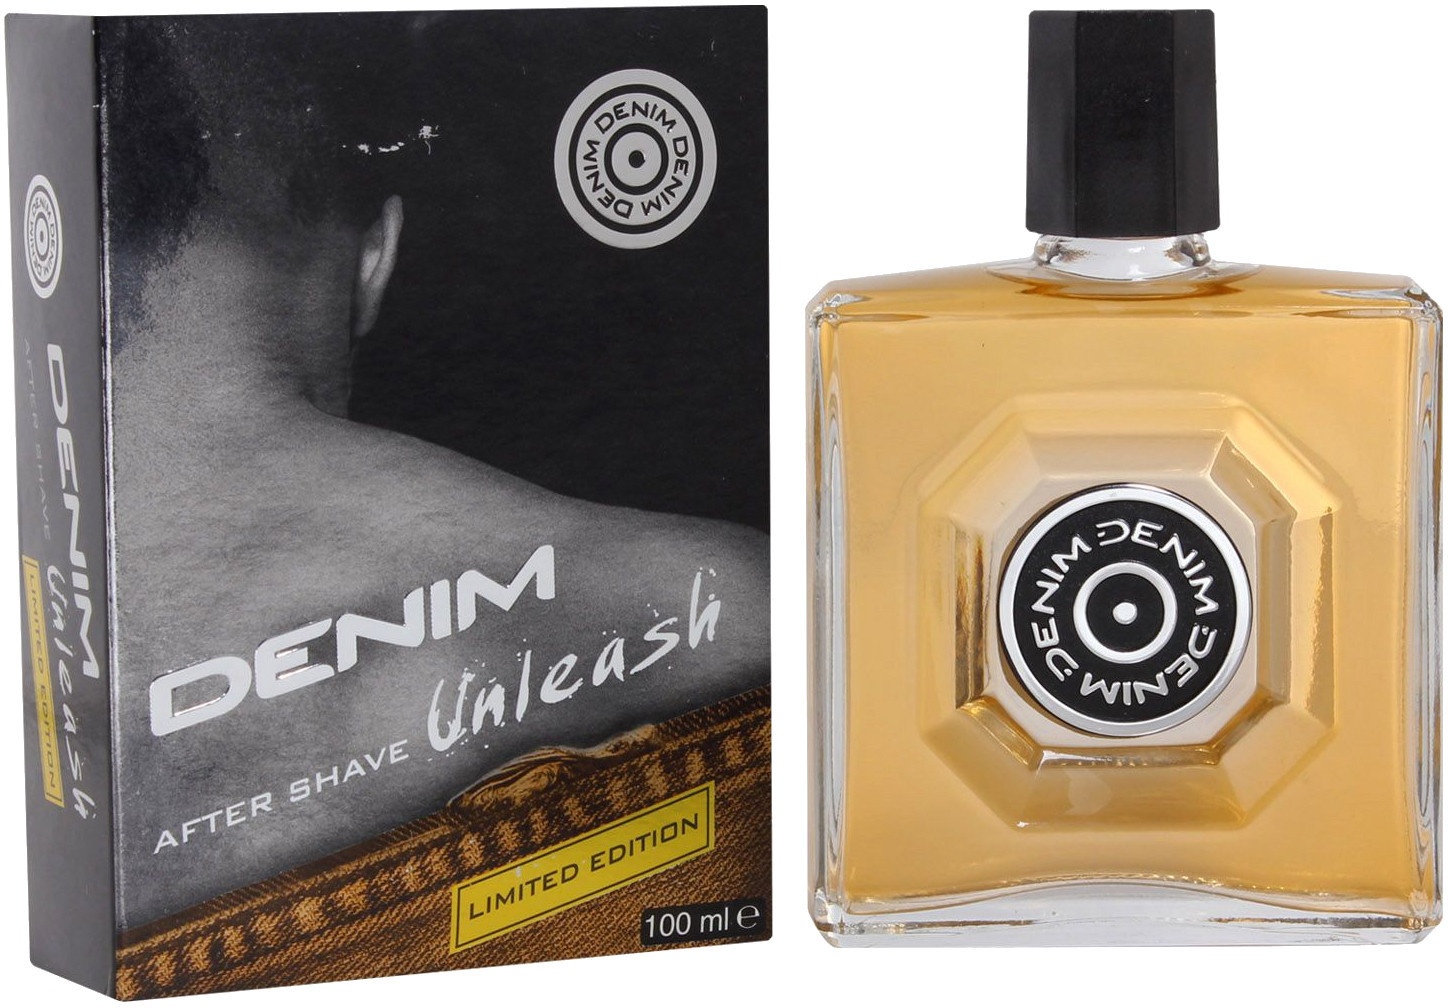 Aftershave Lotions Price In India Buy Online At Minyak Wangi Gatsby Splash Cologne 175 Ml Denim After Shave Unleash 100